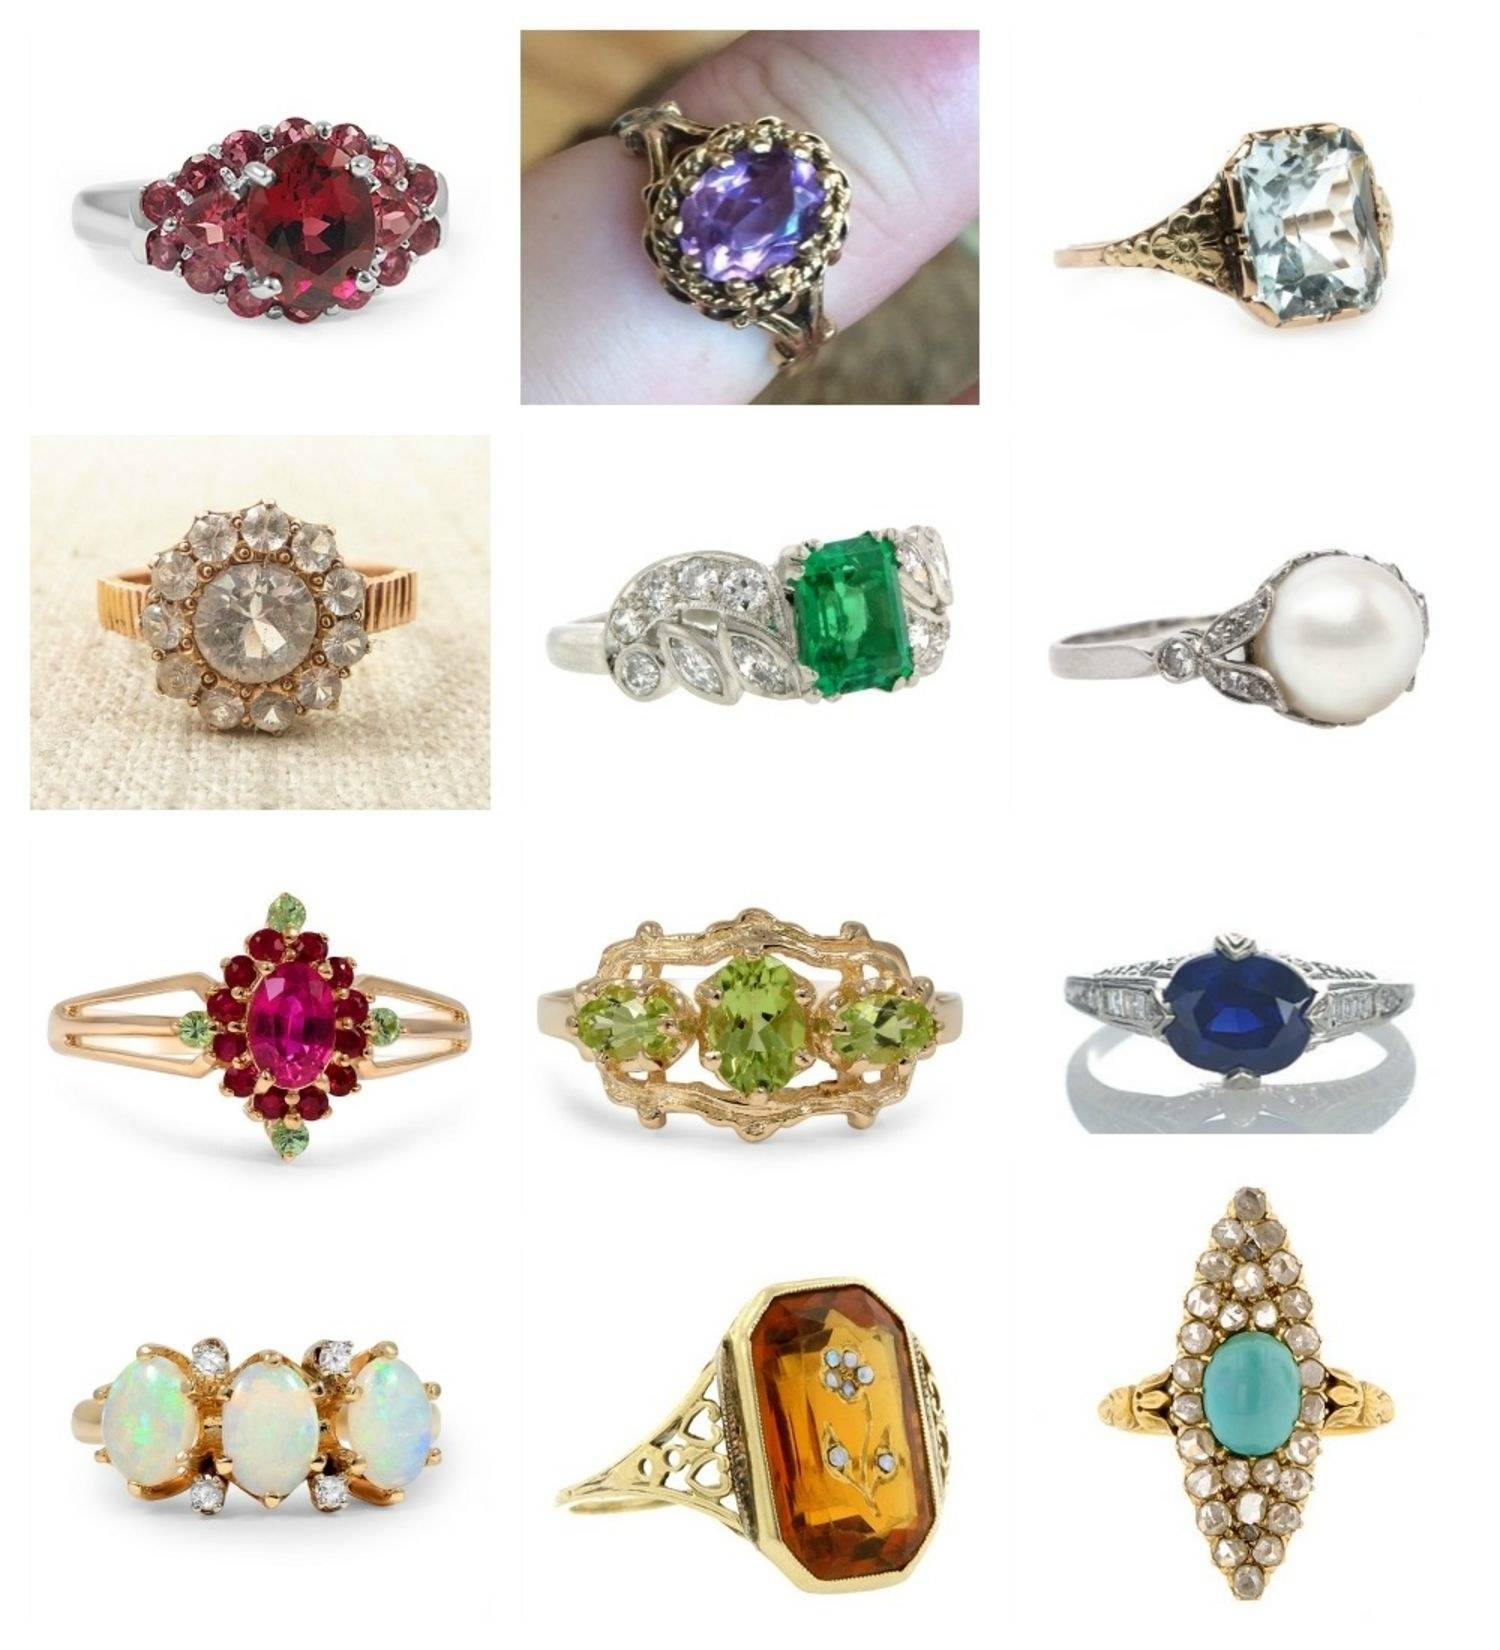 Birthstone Engagement Rings: Diamond Engagement Ring Alternatives Pertaining To June Birthstone Engagement Rings (View 3 of 15)